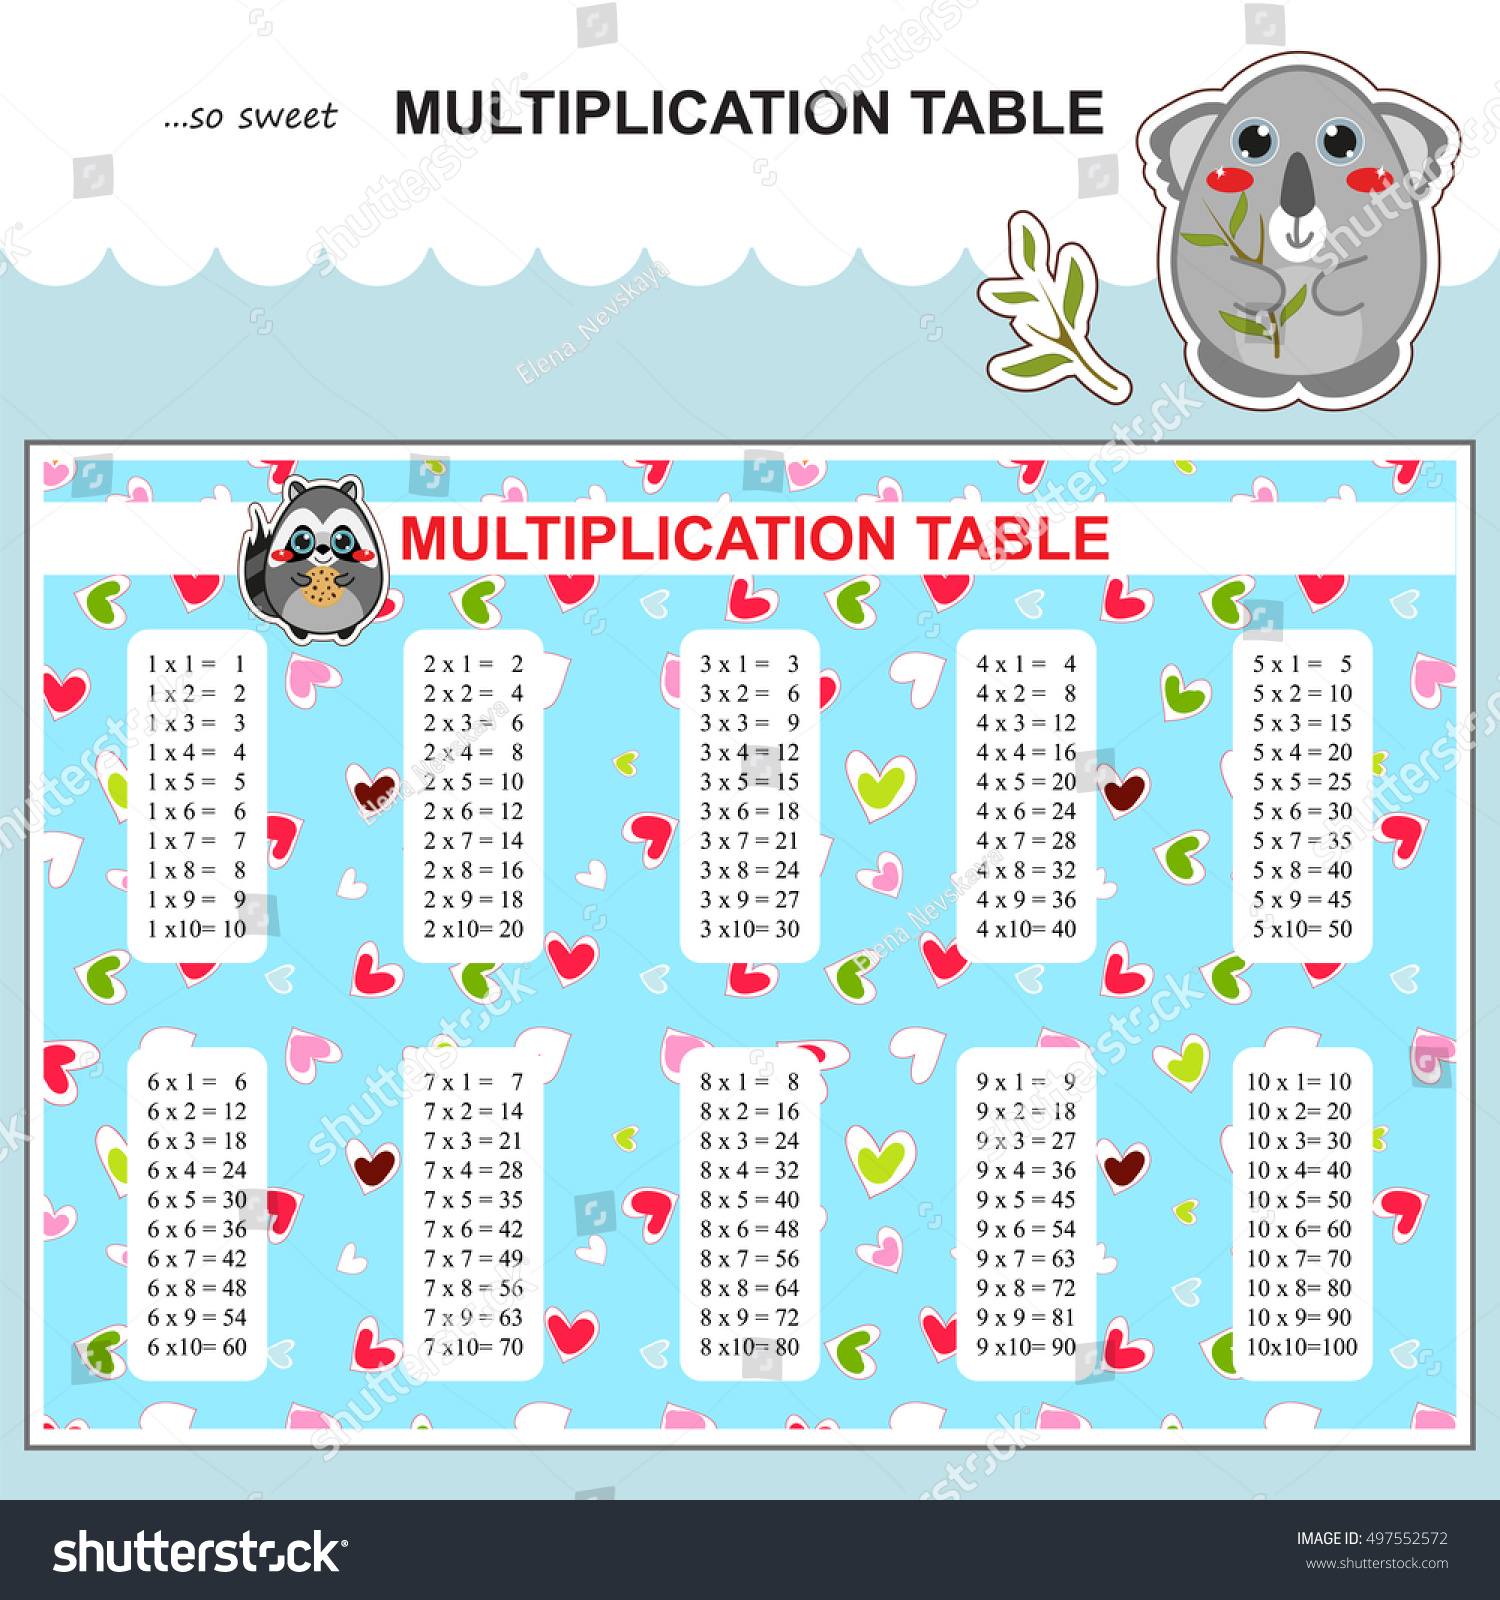 Vector Multiplication Table Printable Poster Card Stock Vector ...